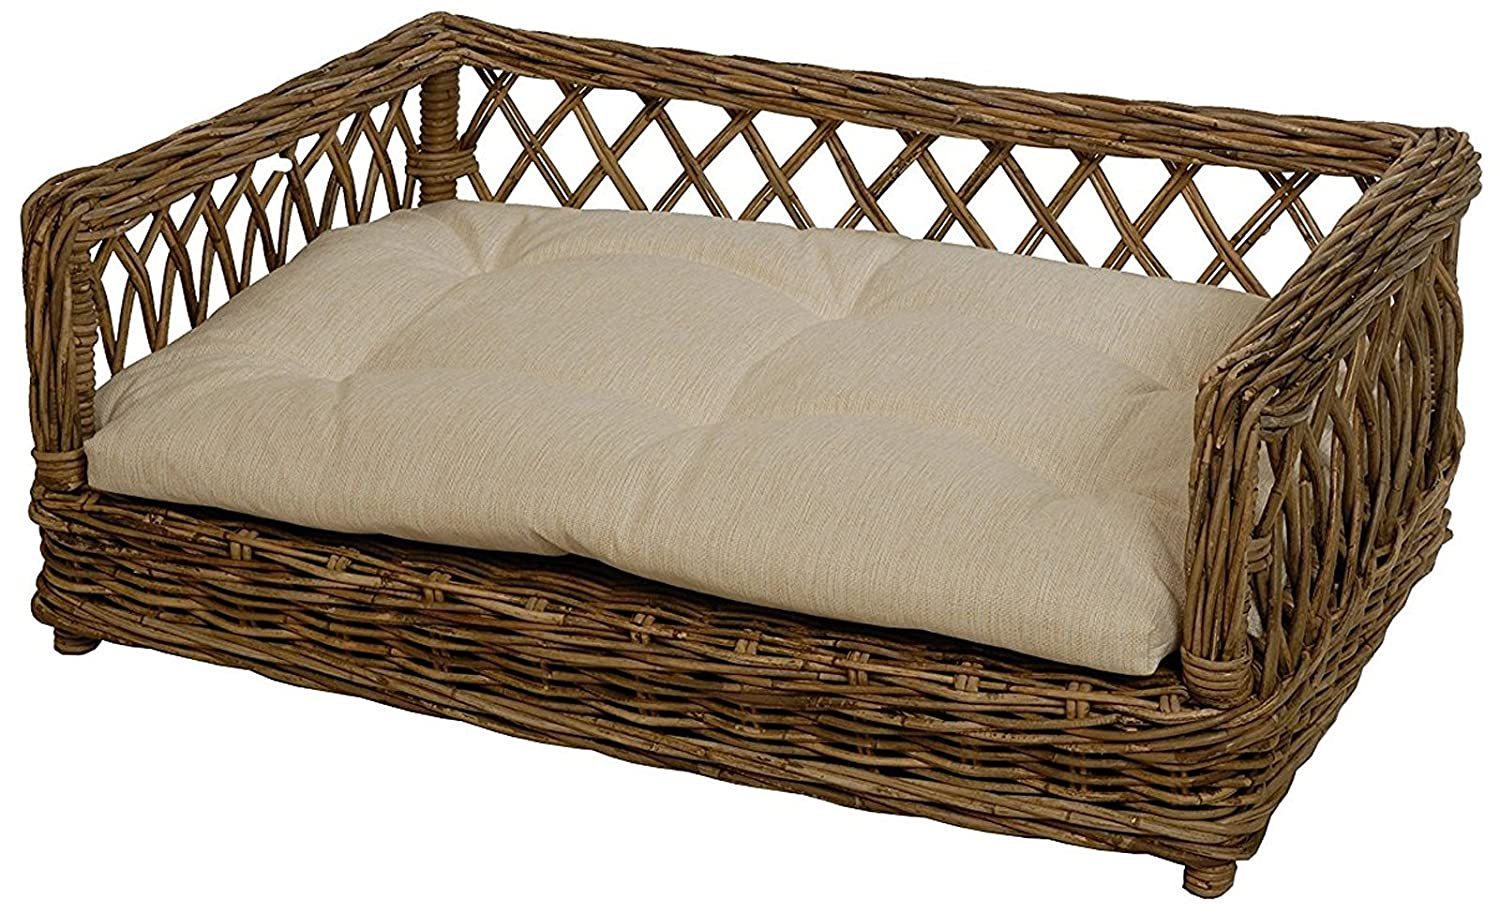 Lucky Dog Bed Dog Basket Wicker with Beige Cushion Size XL